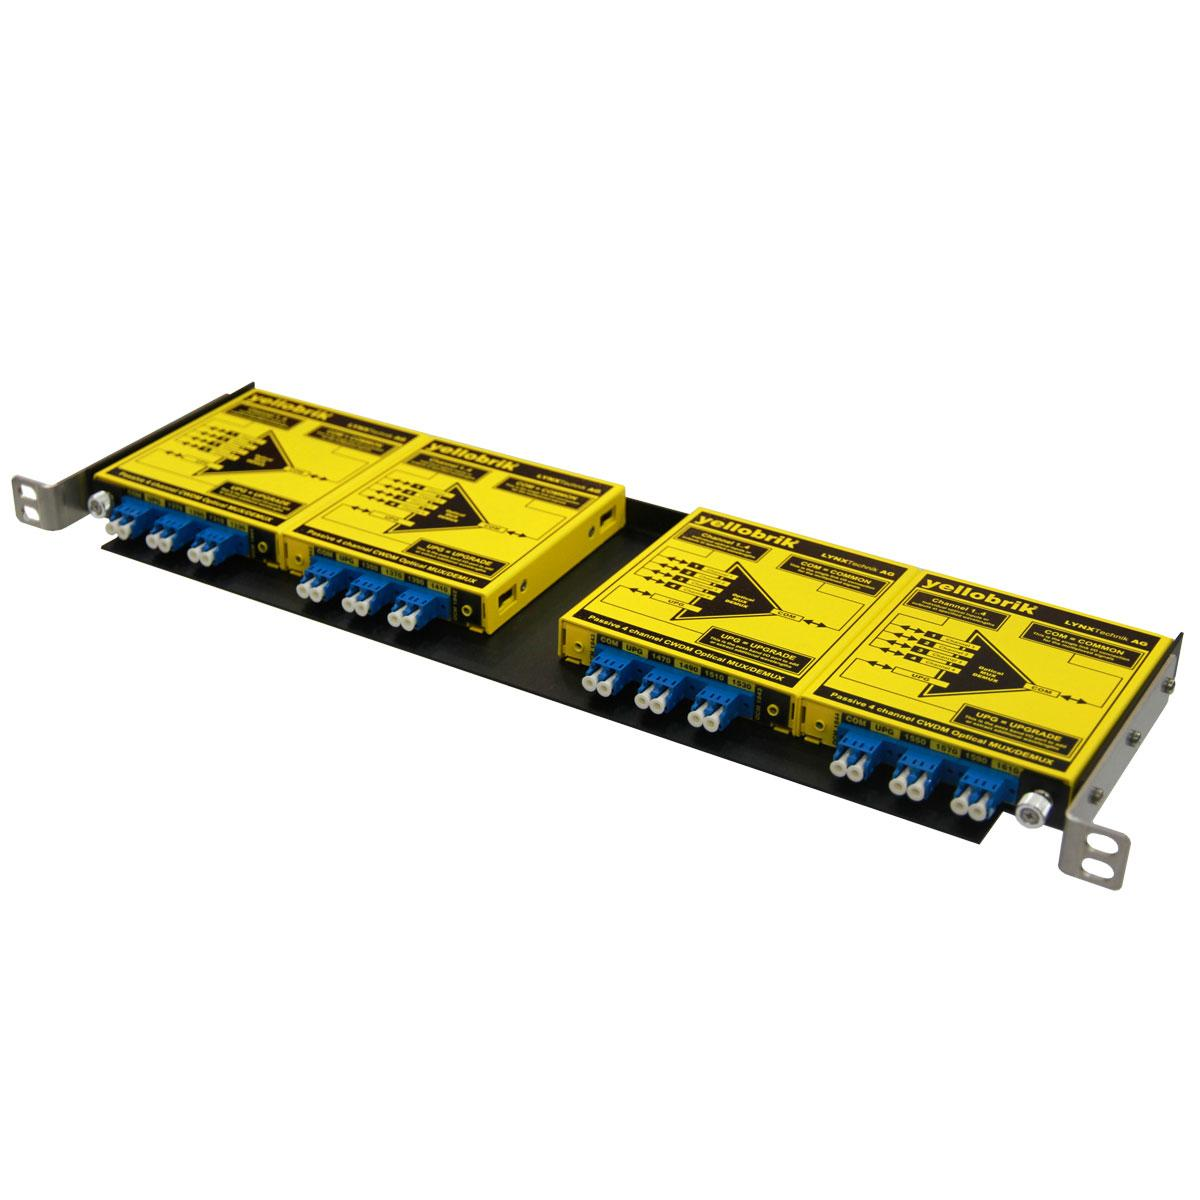 yellobrik OCM Modules in RFR 1018 frame